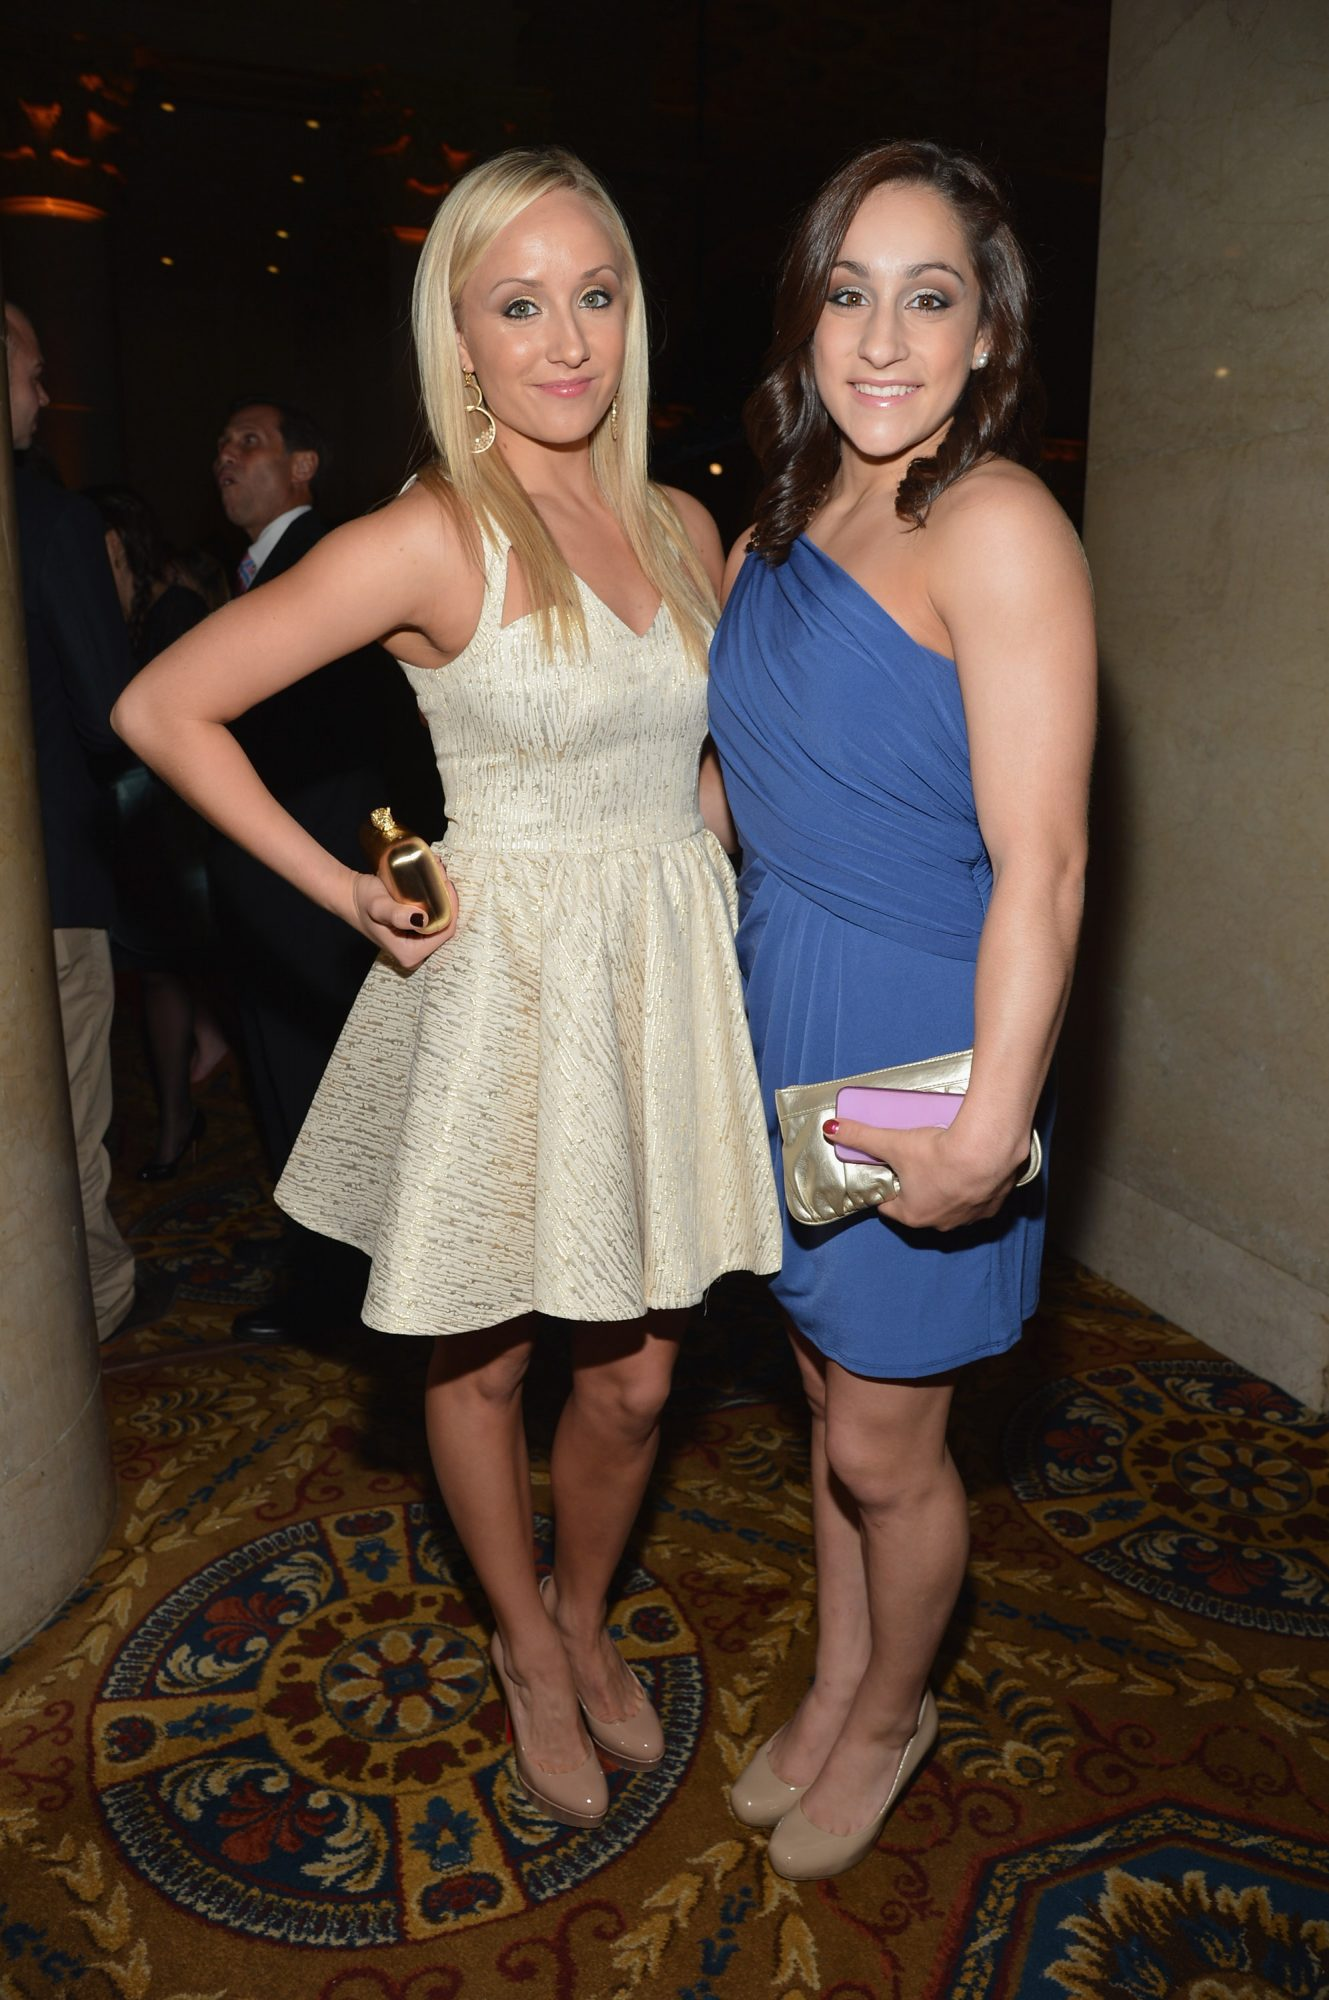 Olympians Jordyn Wieber & Nastia Liukin Open Up About Pressure to Stay Thin After Gymnastics Careers